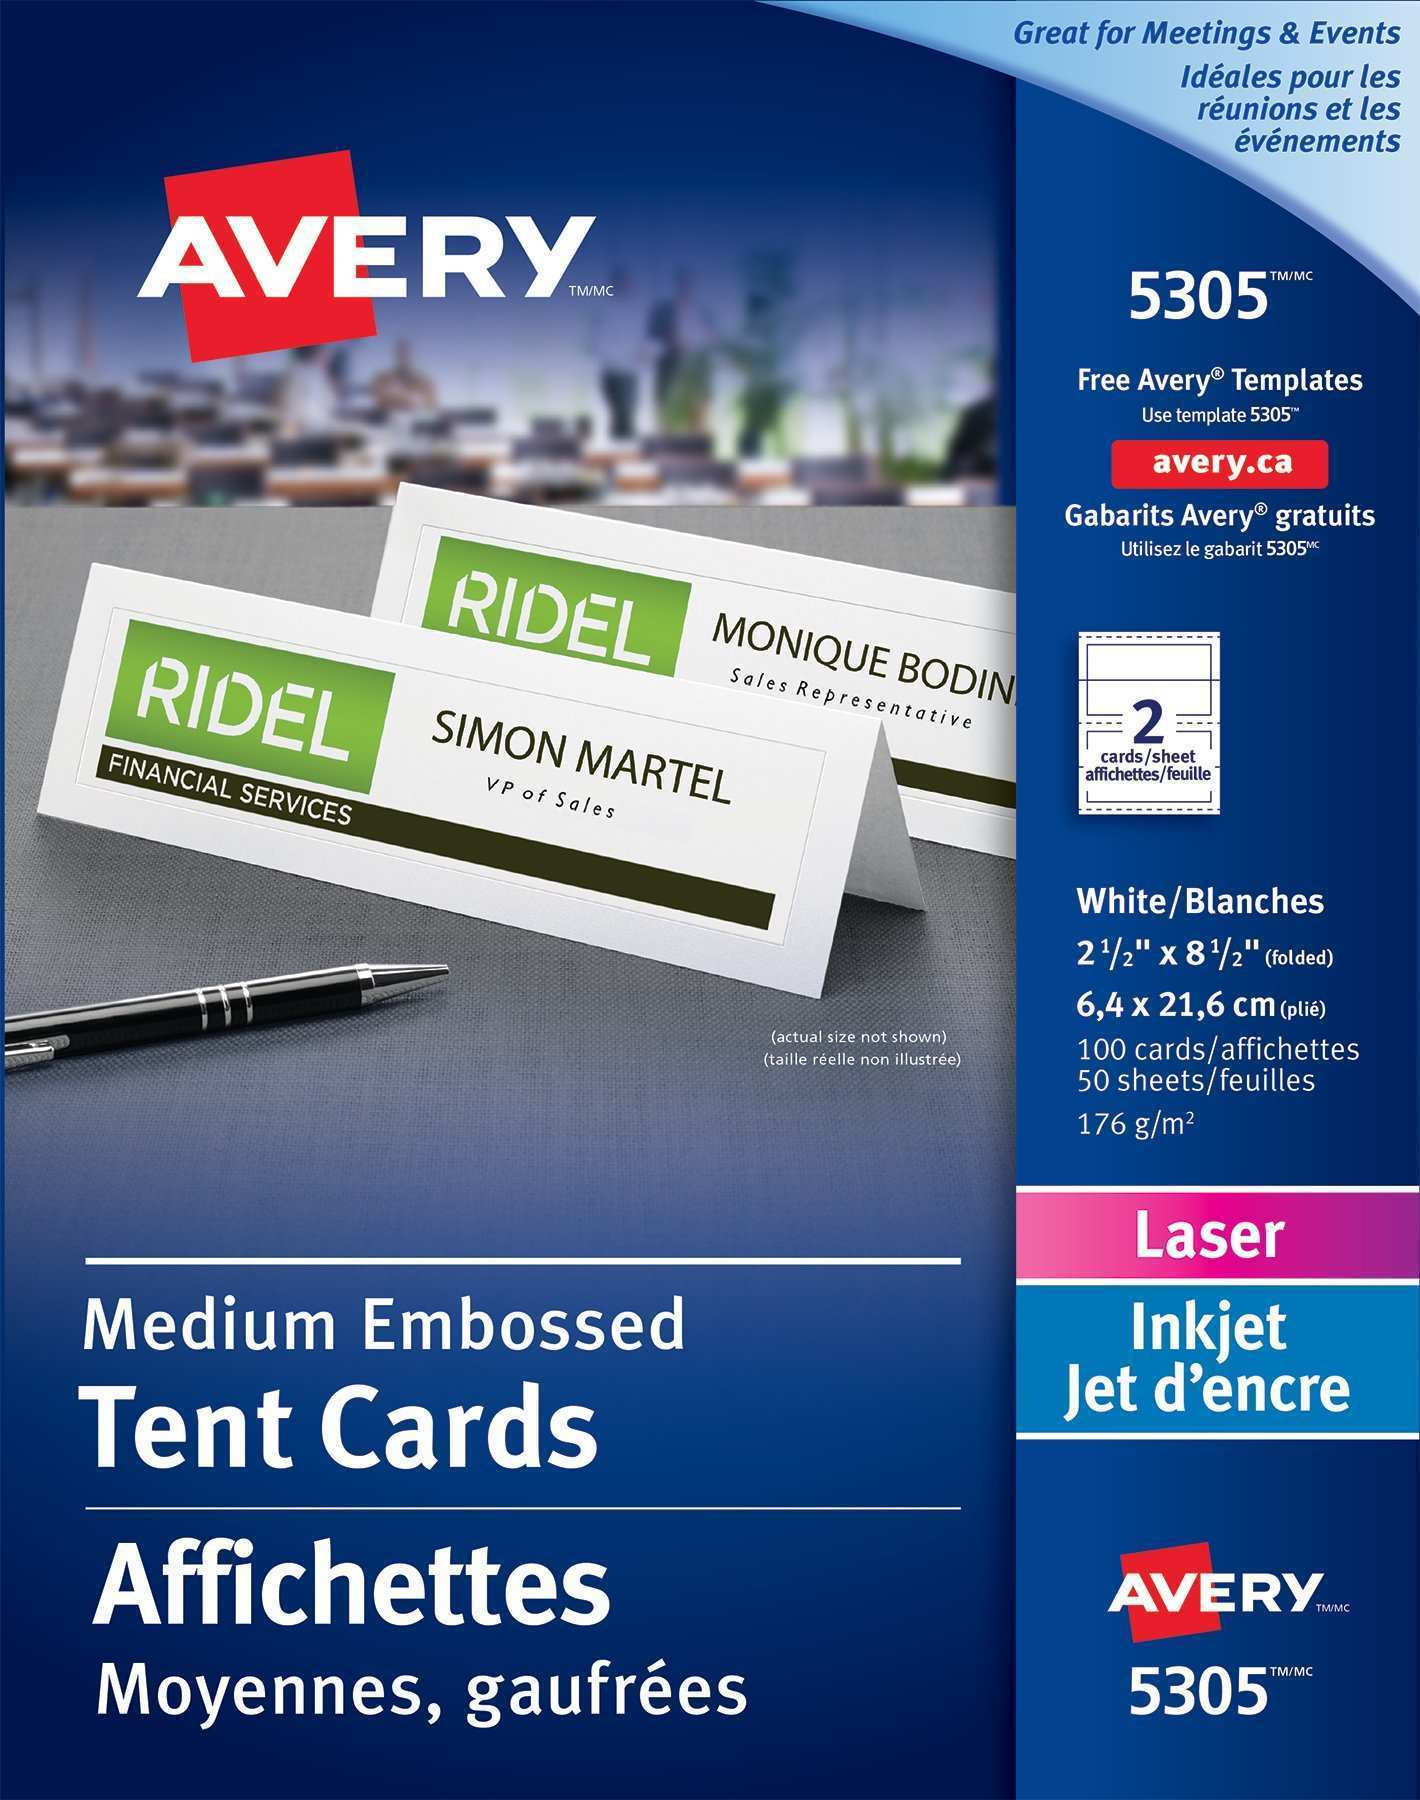 11 How To Create Avery Double Sided Tent Card Template 5305 in Photoshop by Avery Double Sided Tent Card Template 5305